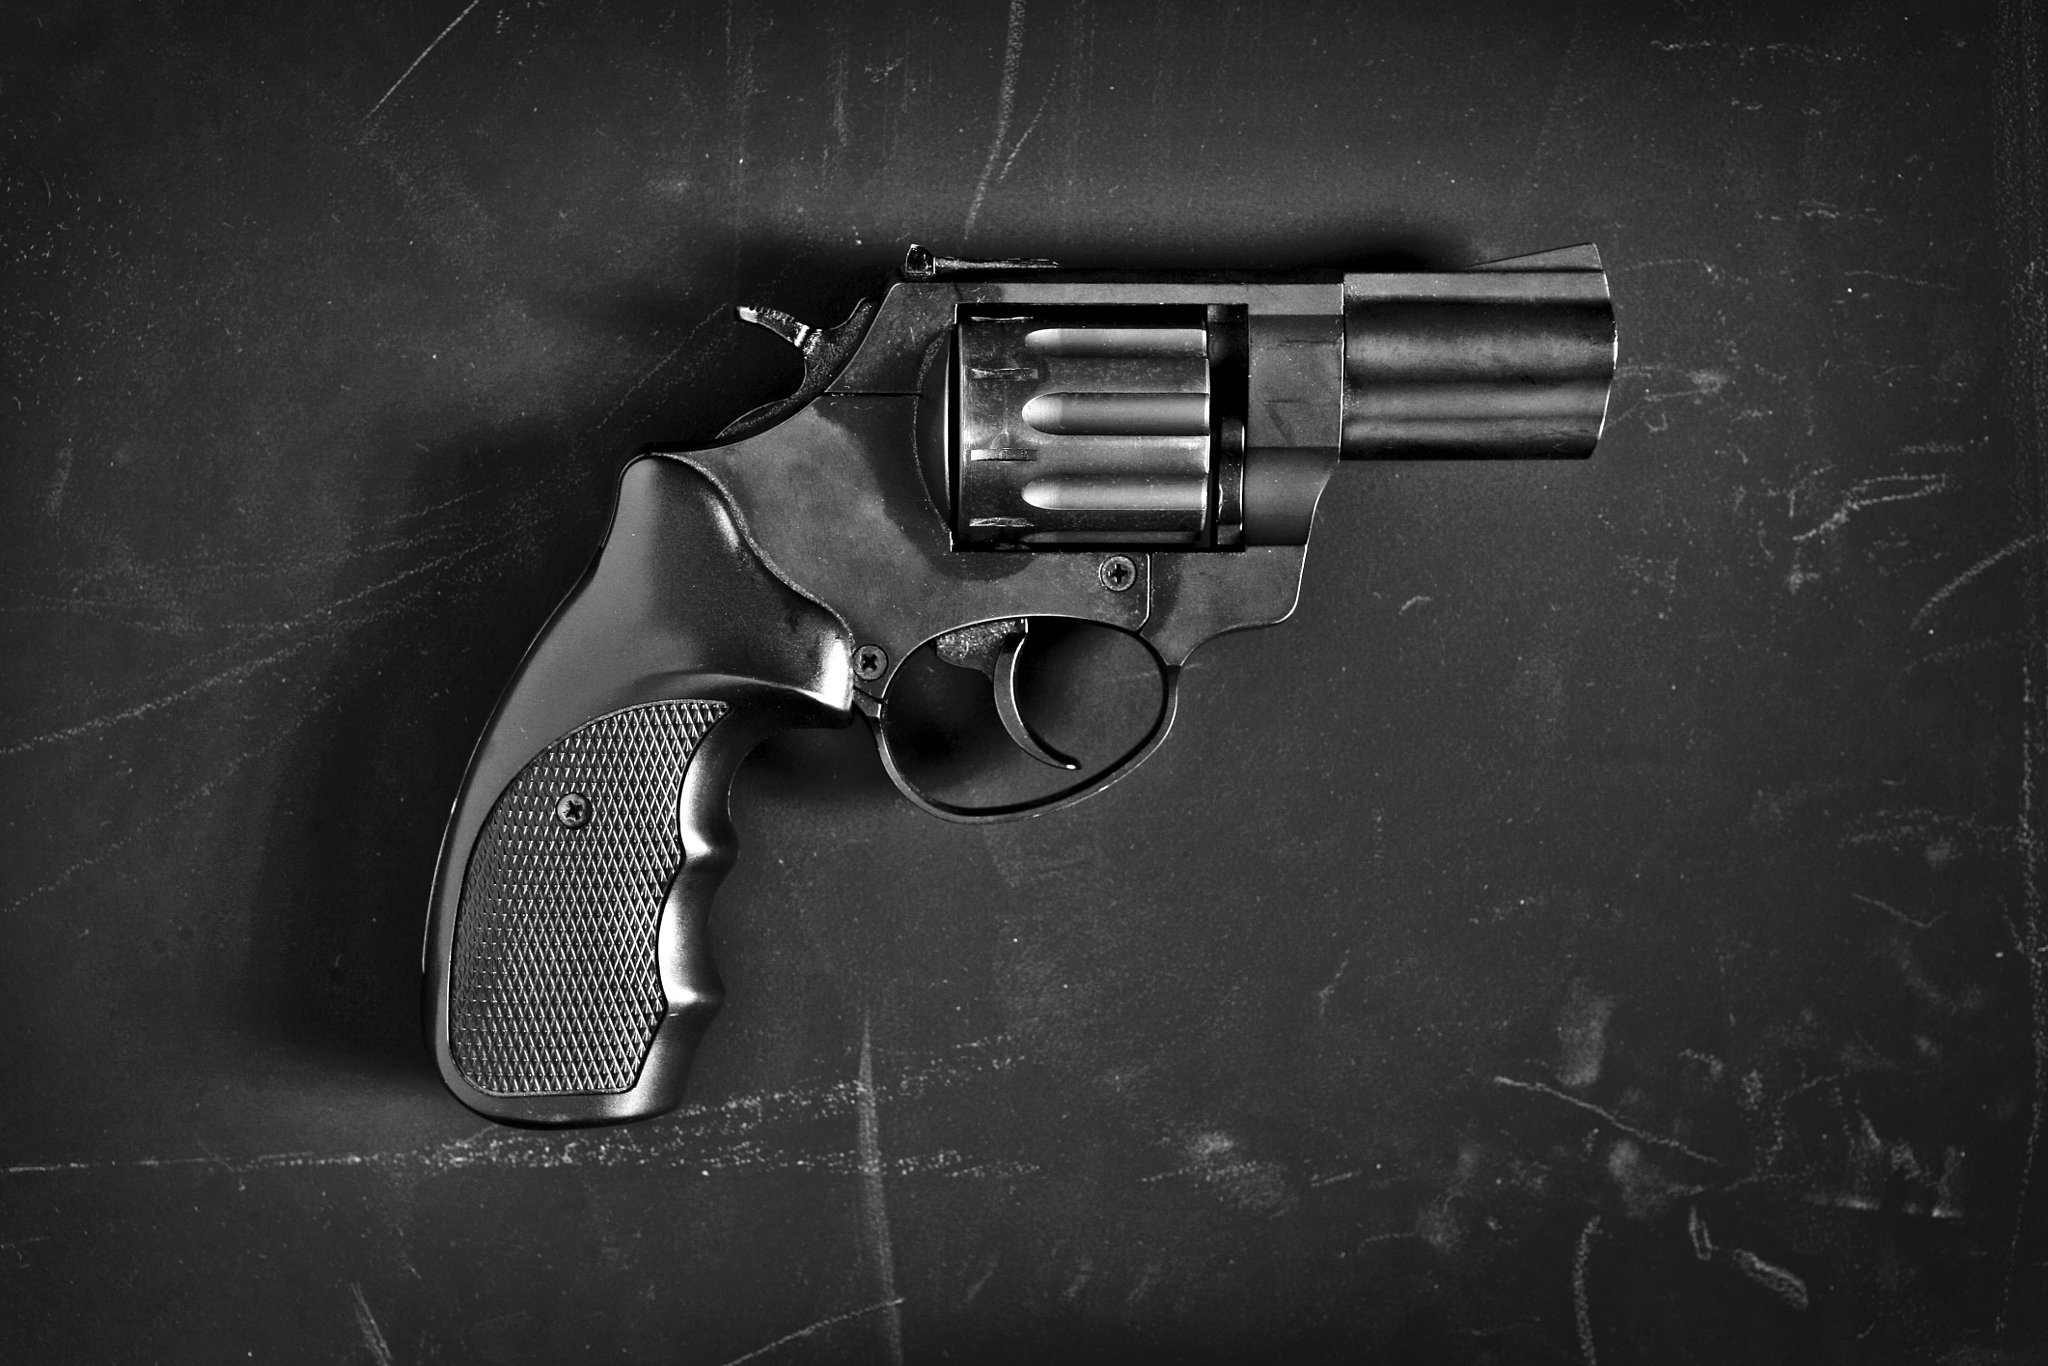 Eighty percent of accidental firearm deaths of kids under the age of 15 occur at home.